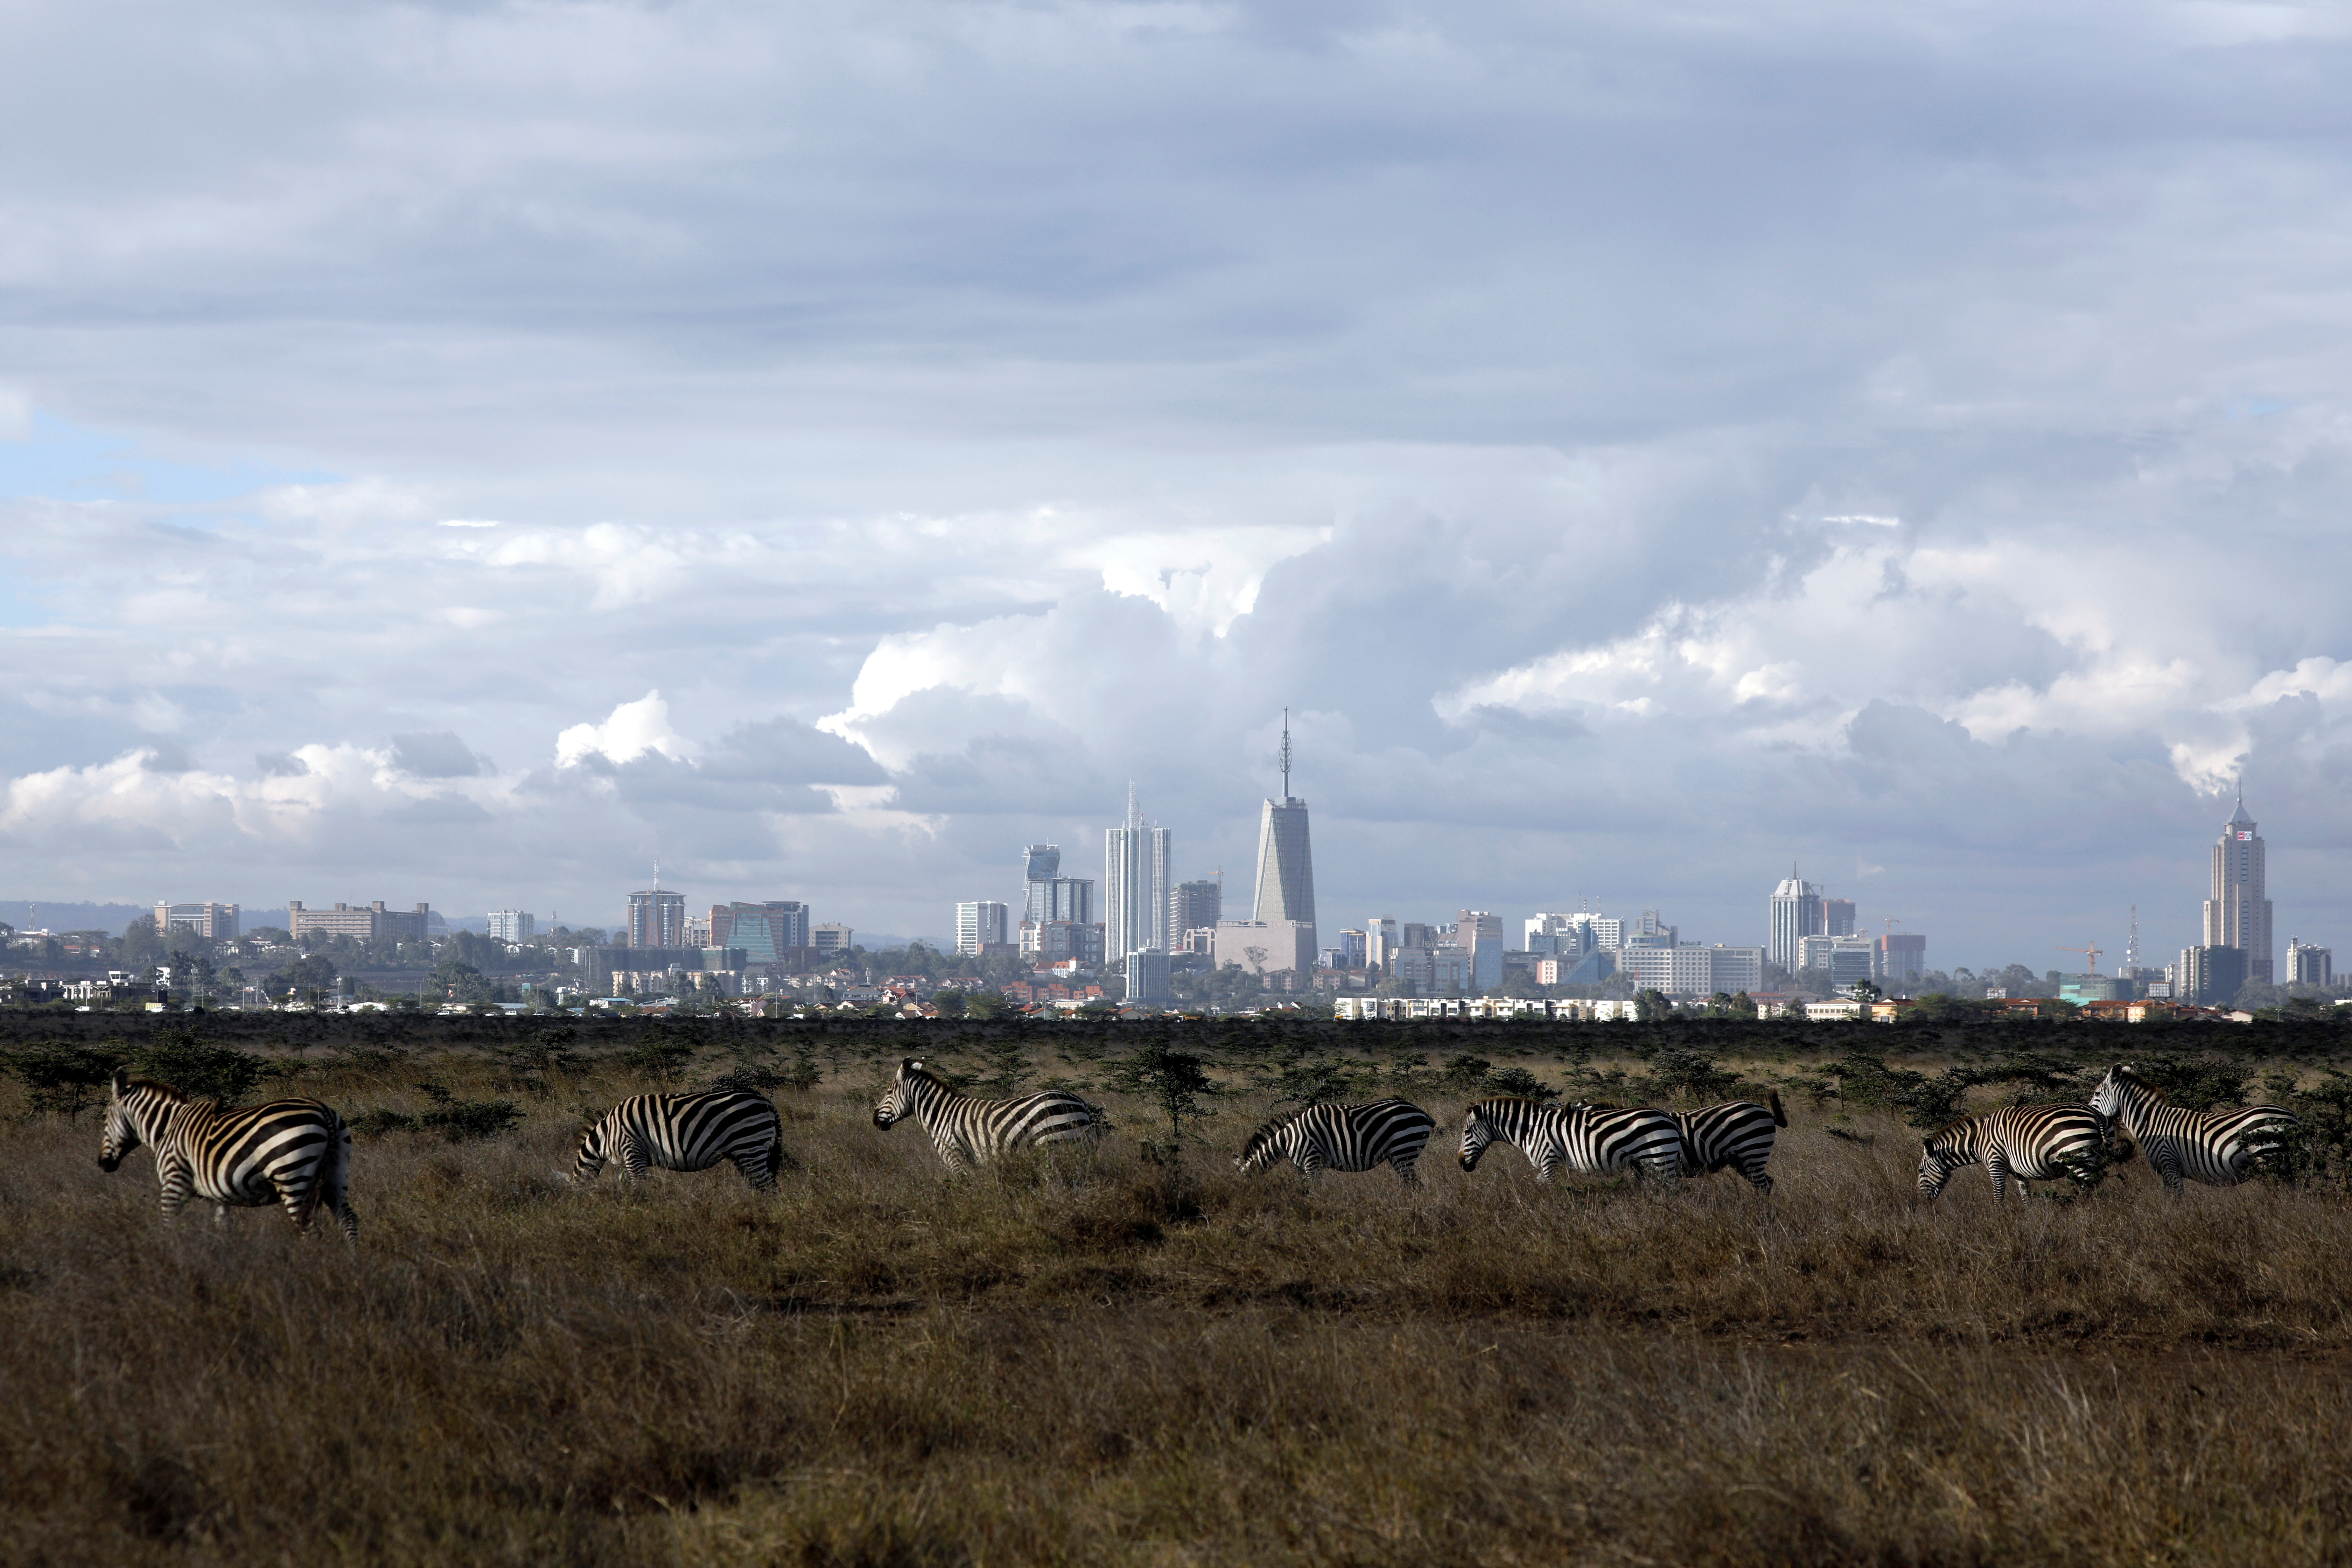 The Nairobi skyline is seen in the background as zebras walk through the Nairobi National Park, near Nairobi, Kenya, December 3, 2018.